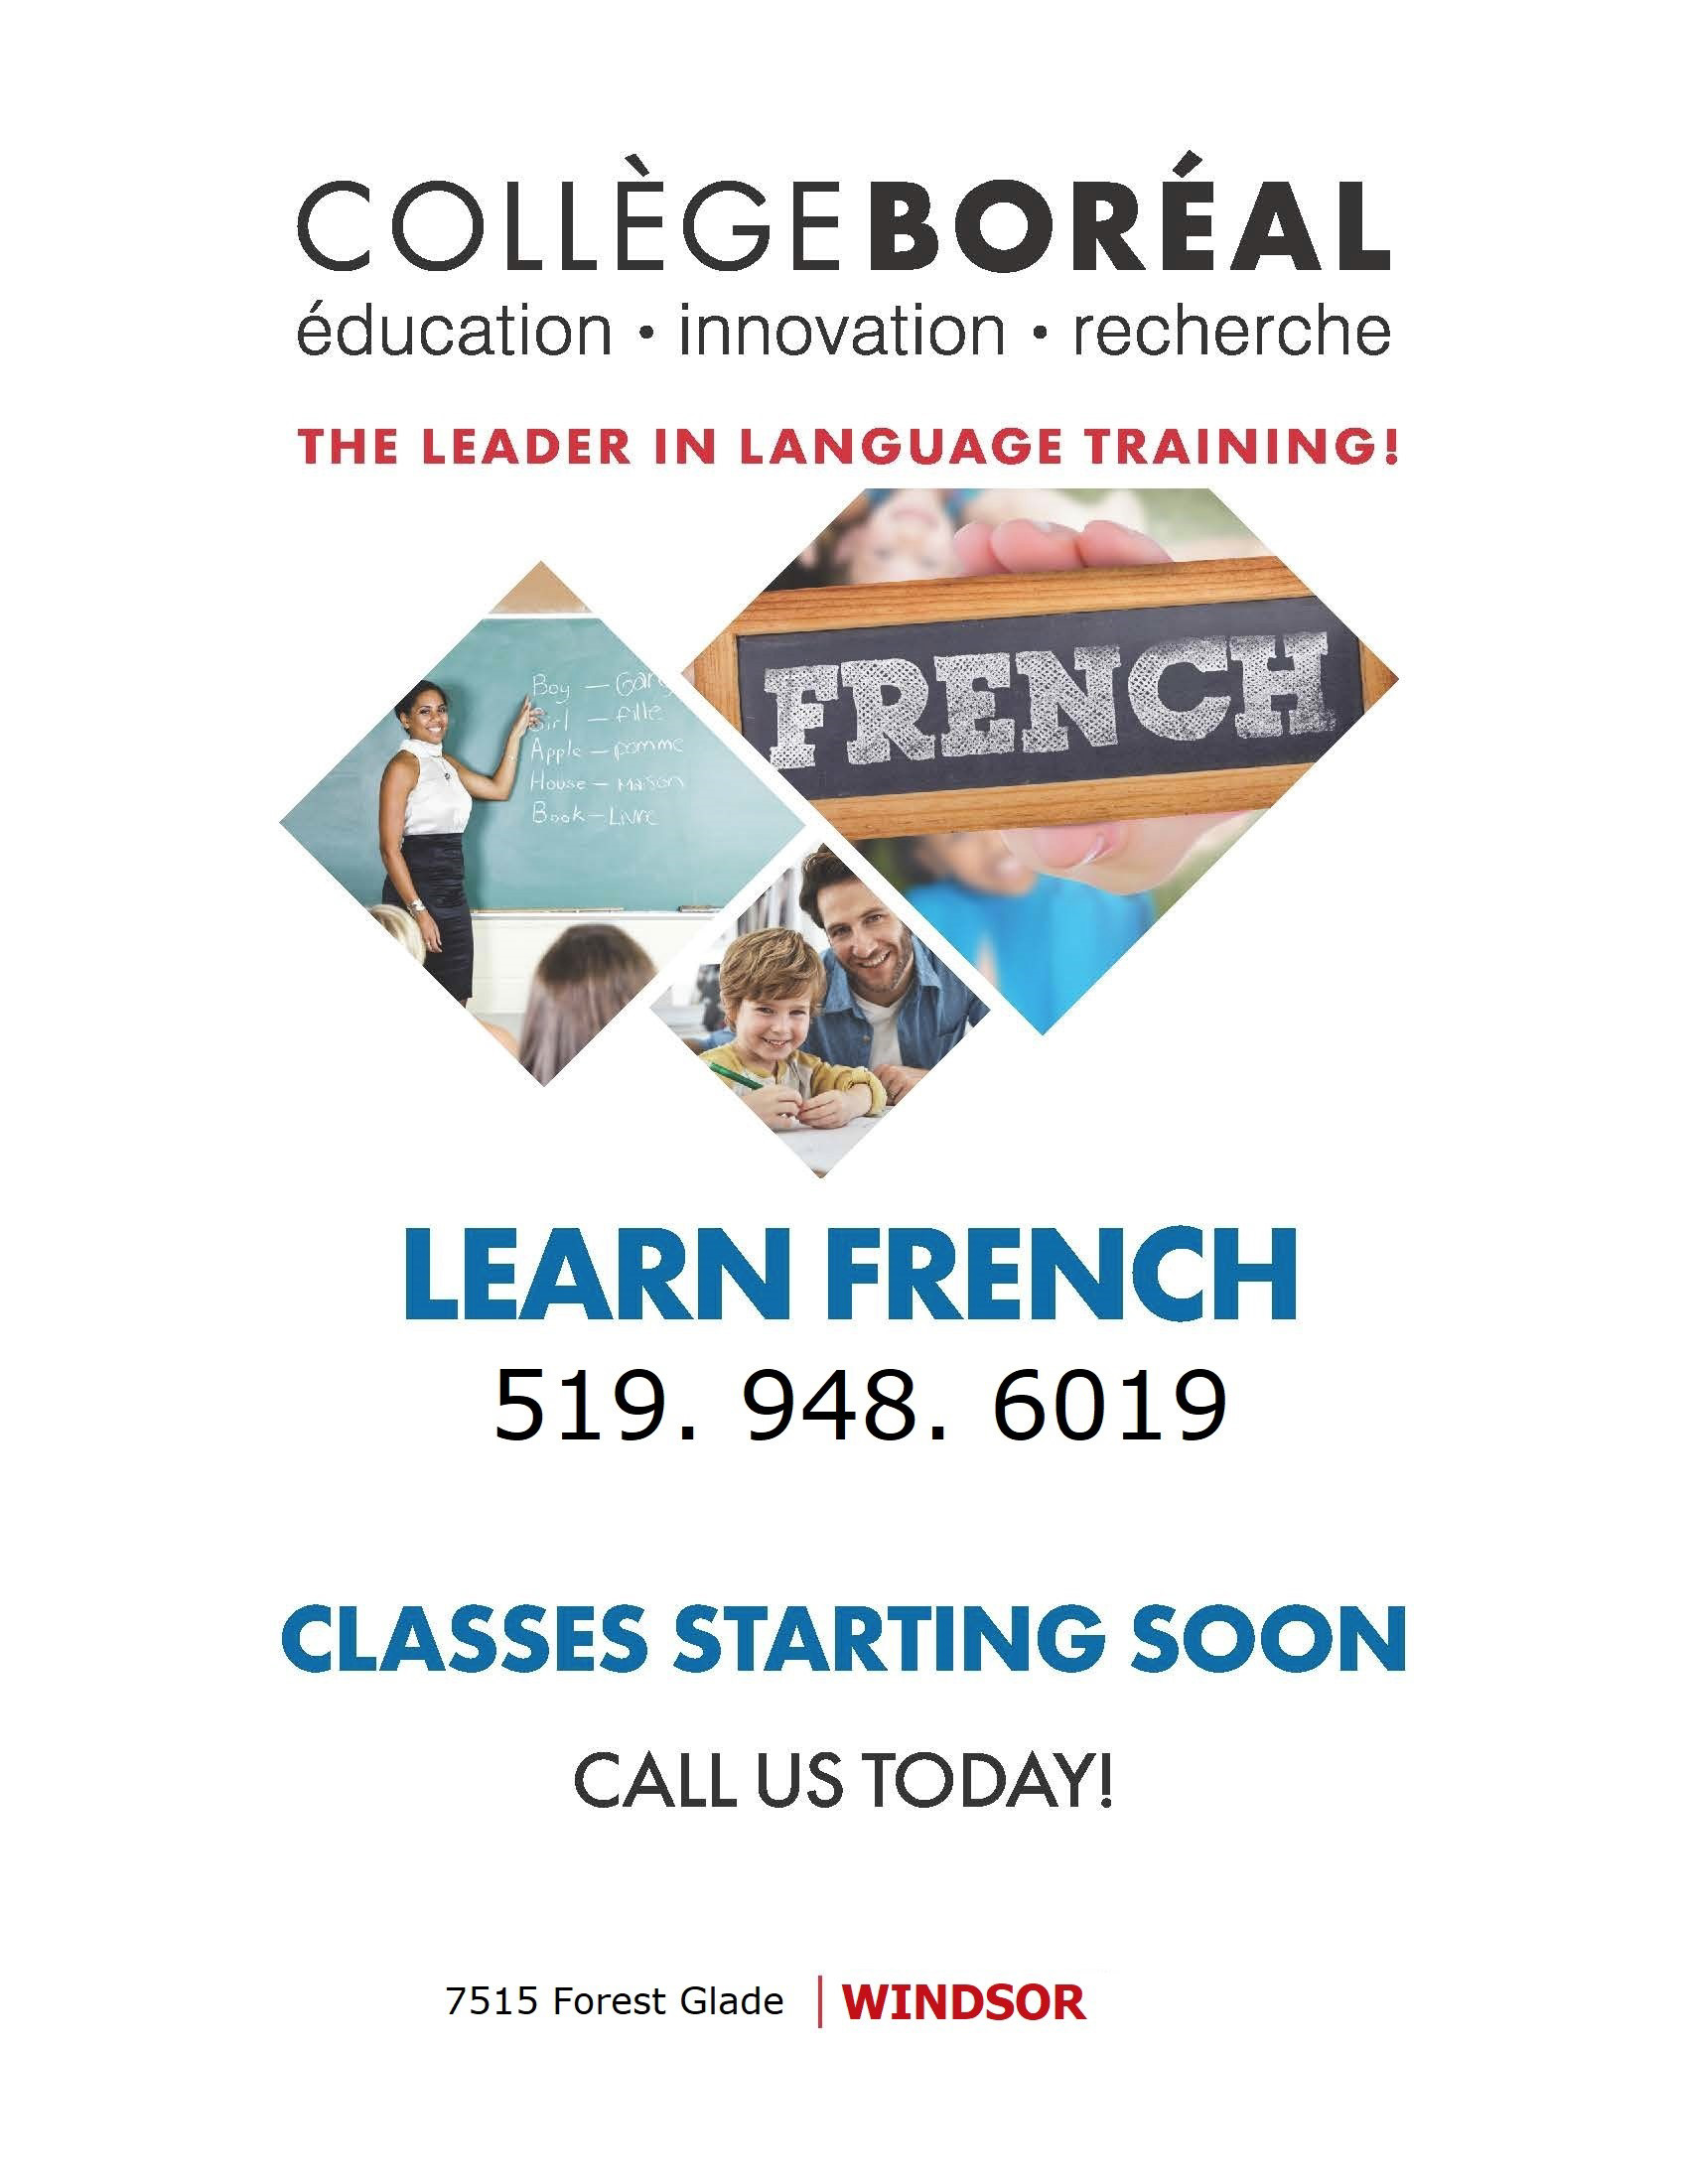 College Boreal Learn French Flyer